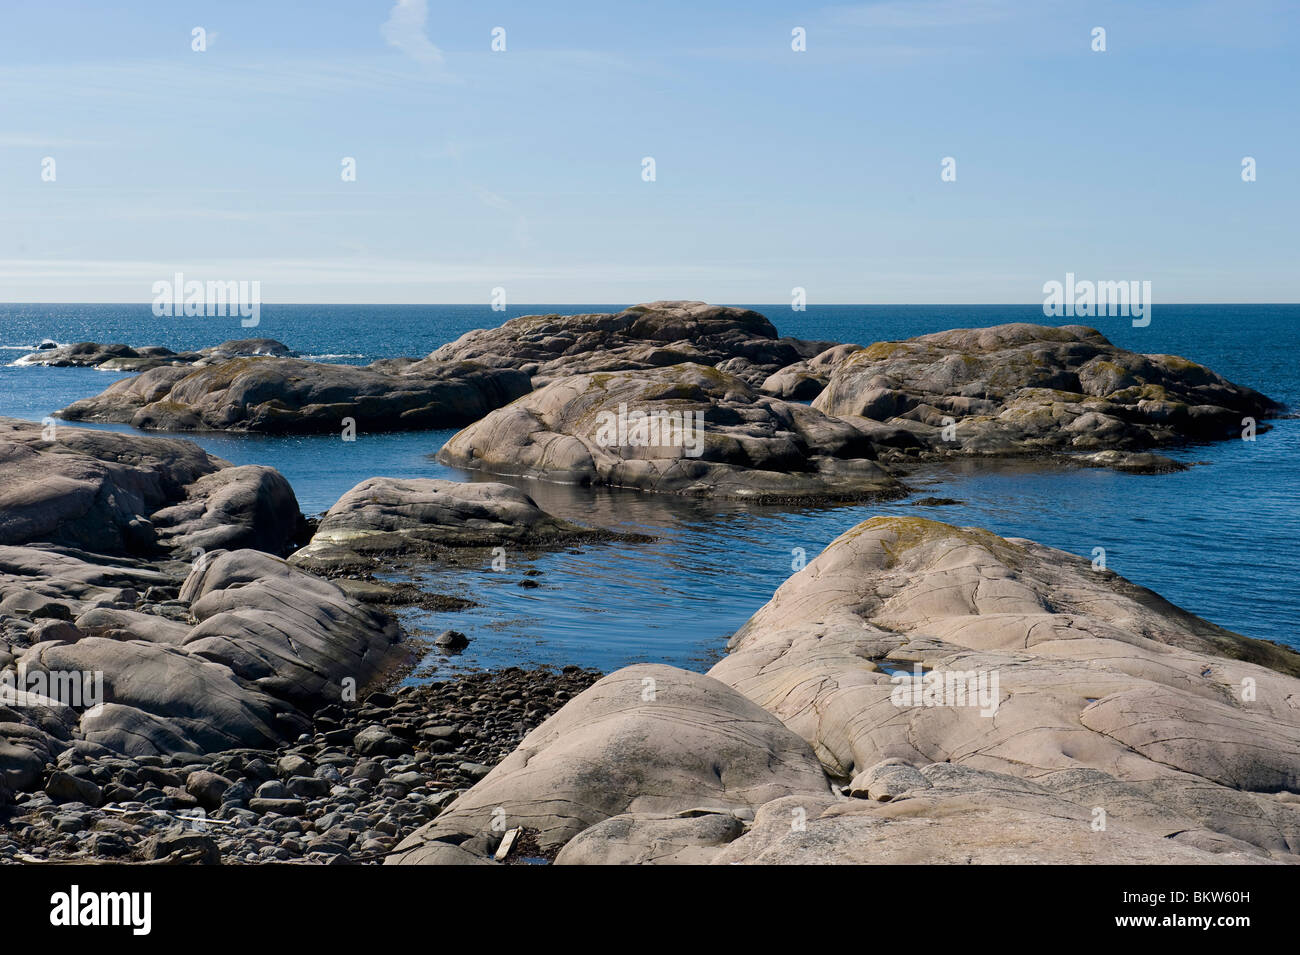 Rocks in the archipelago - Stock Image